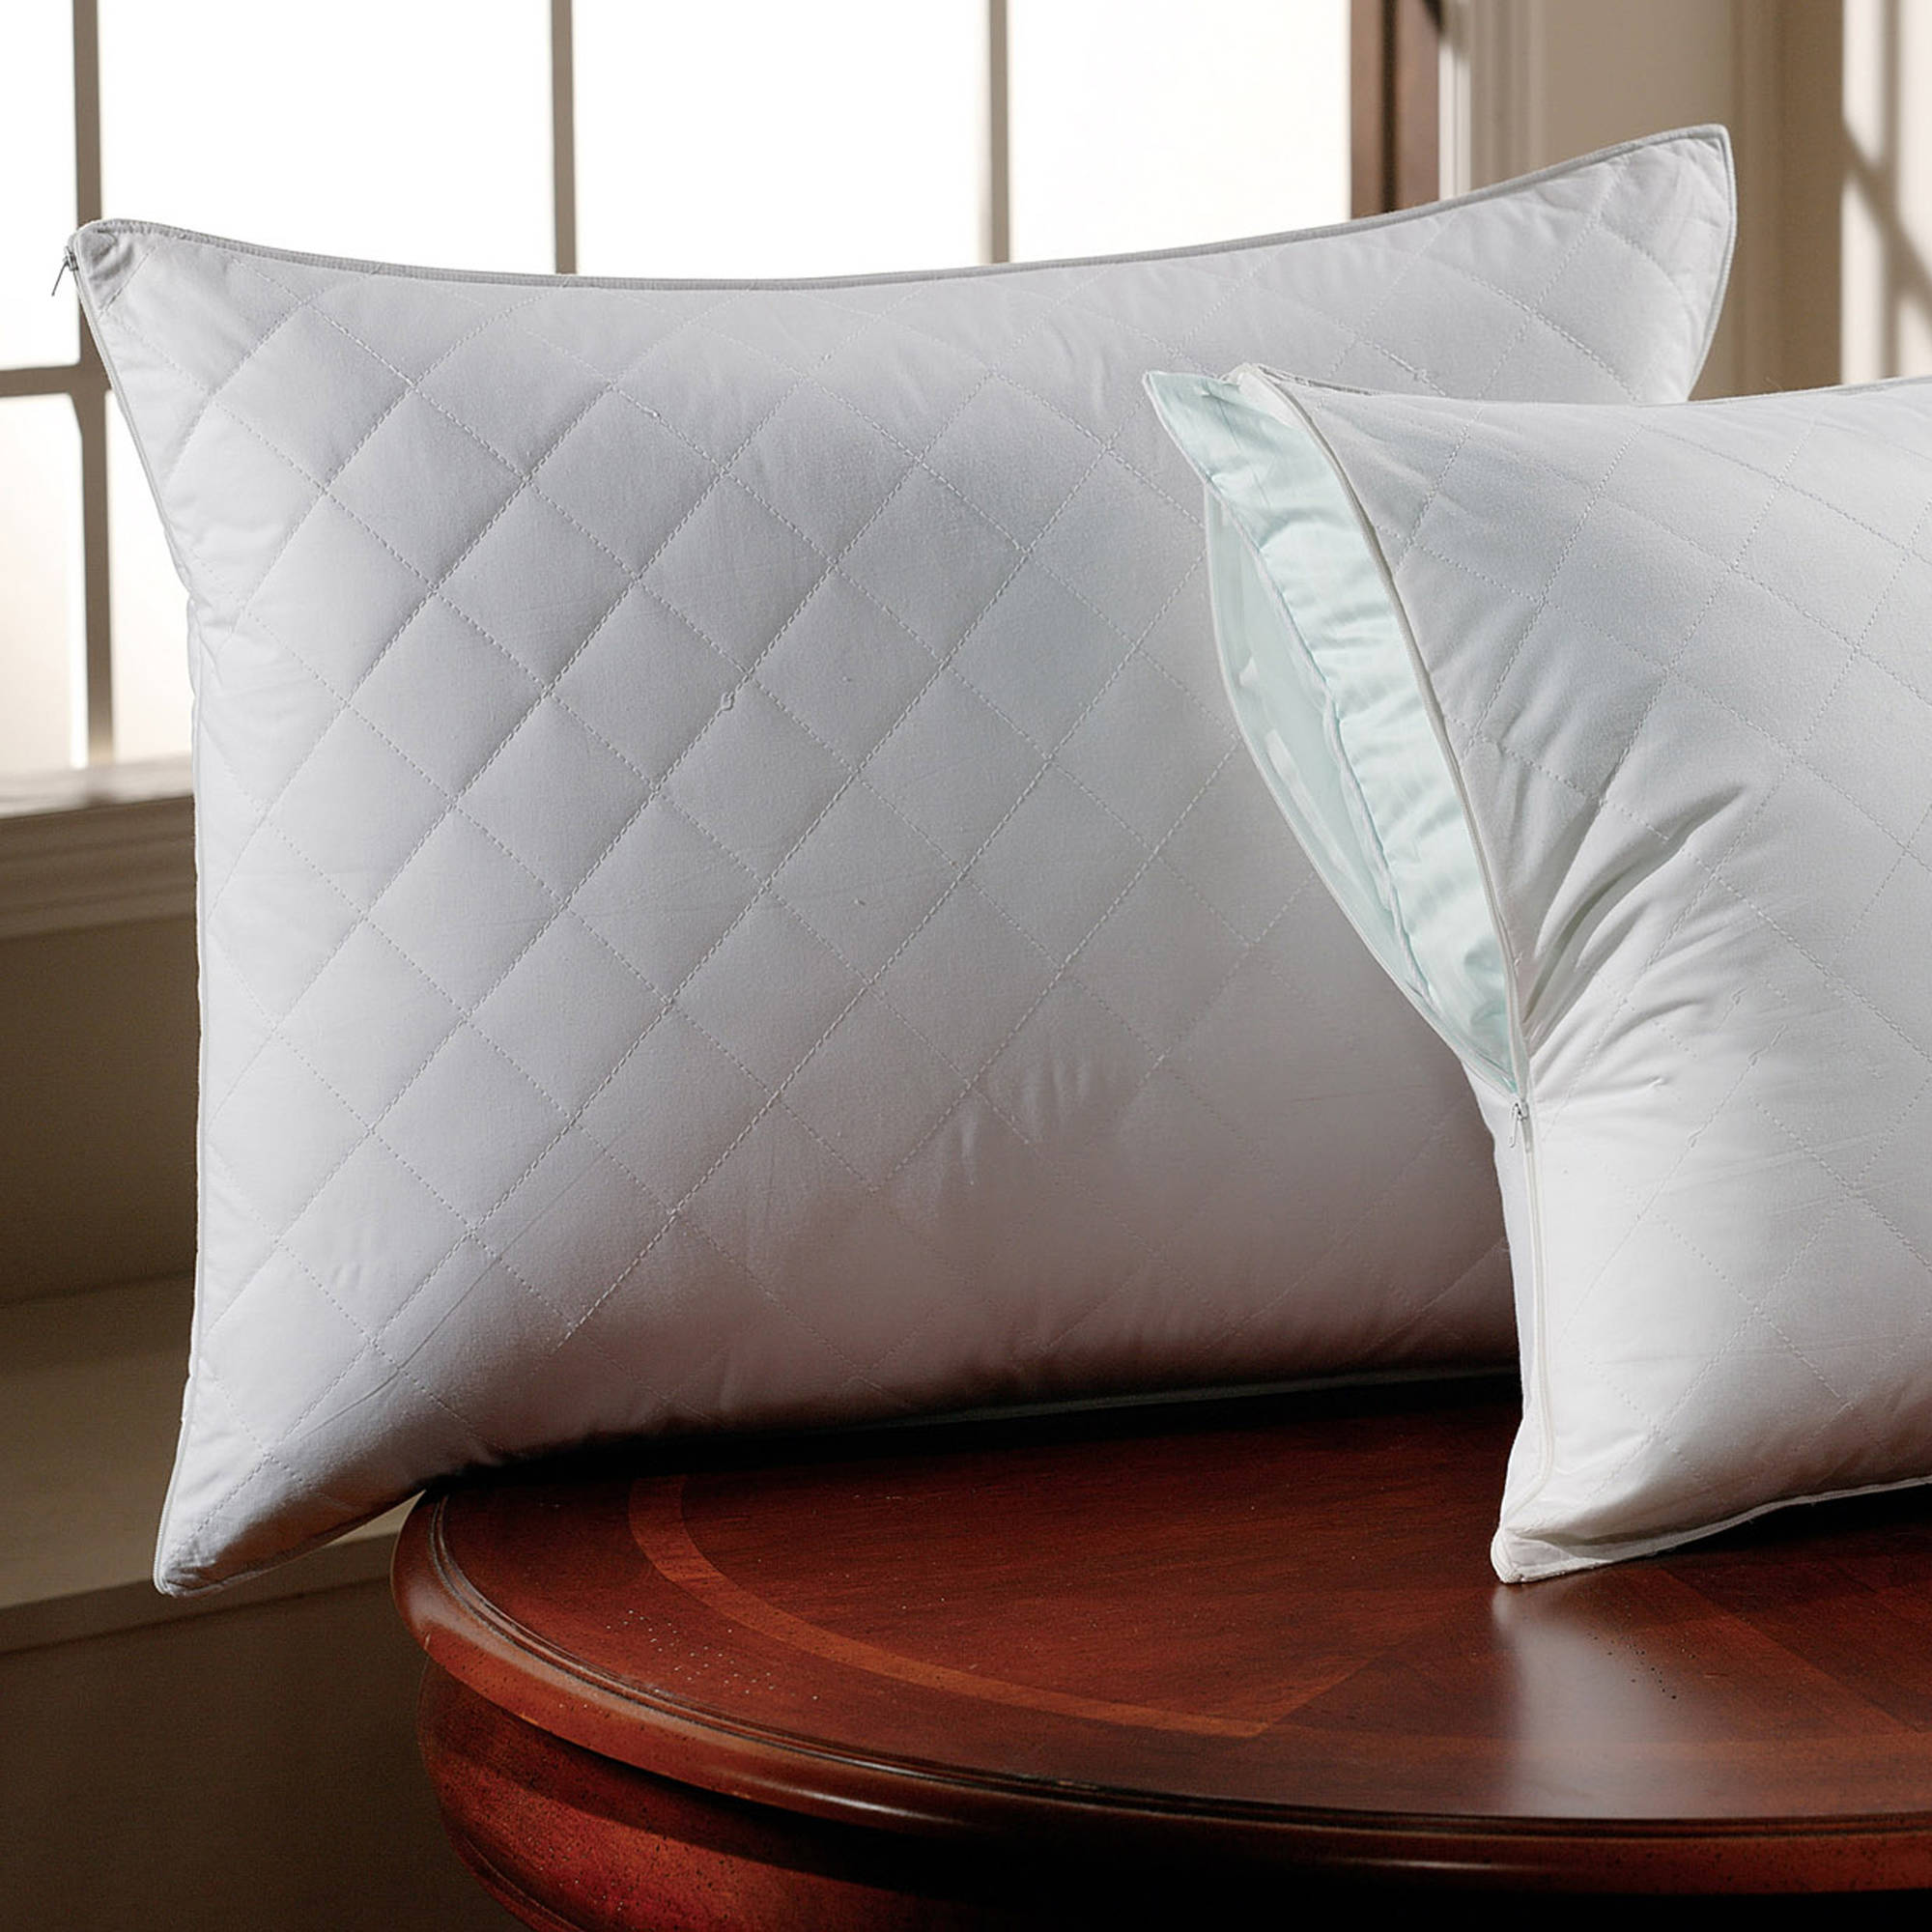 300 Thread Count Cotton Sateen Quilted Pillow Protector by Downlite